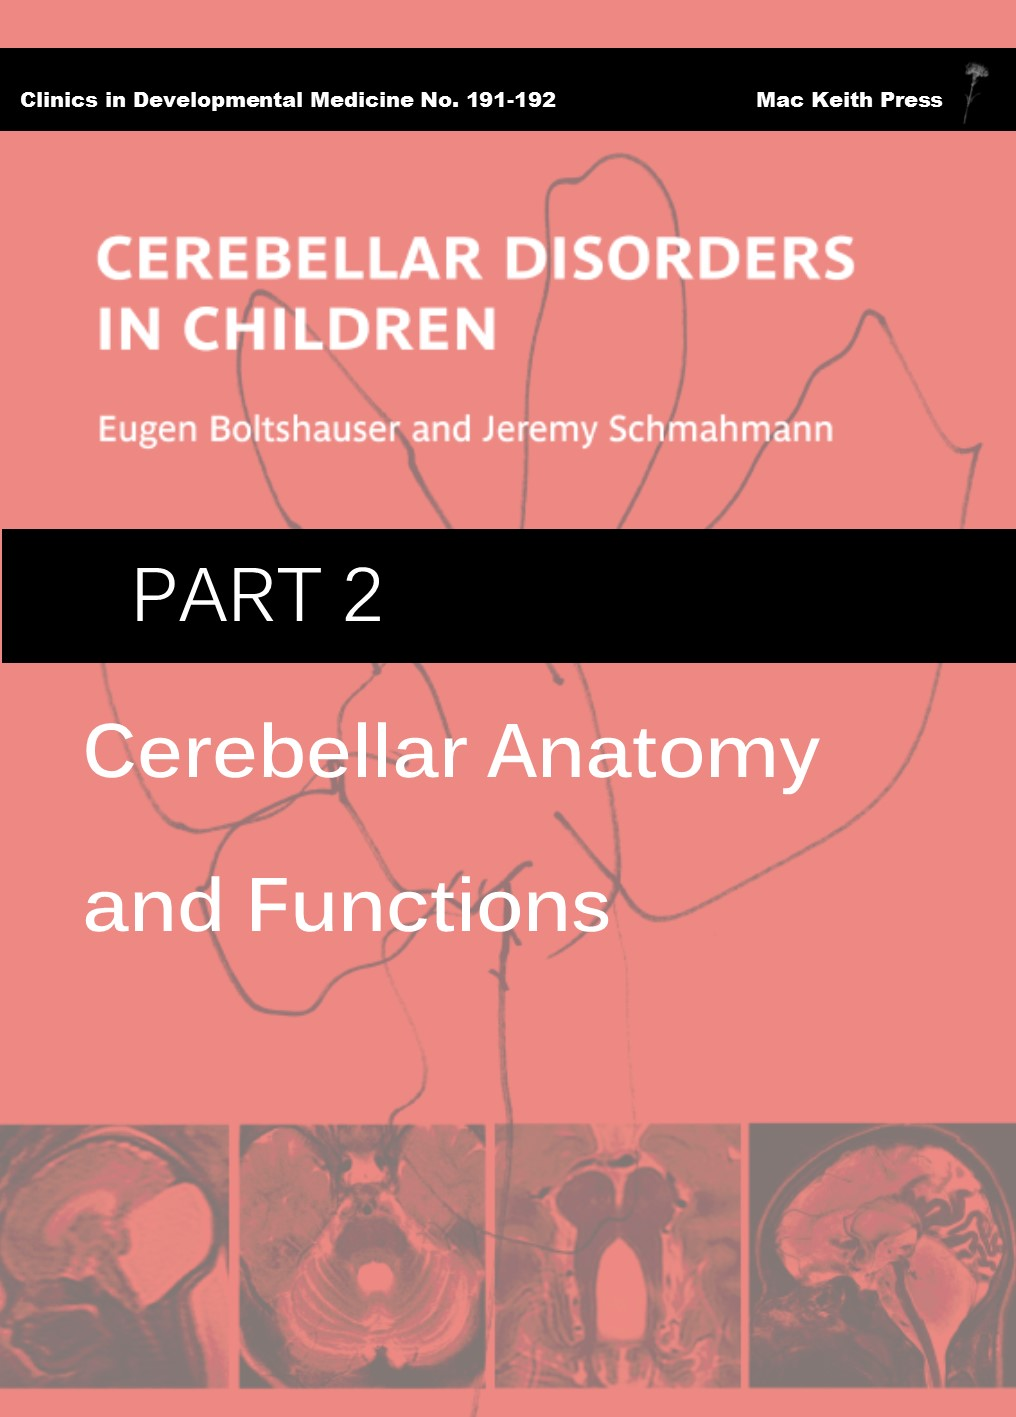 Cerebellar Disorders in Children - Part 2: Cerebellar Anatomy and Functions COVER